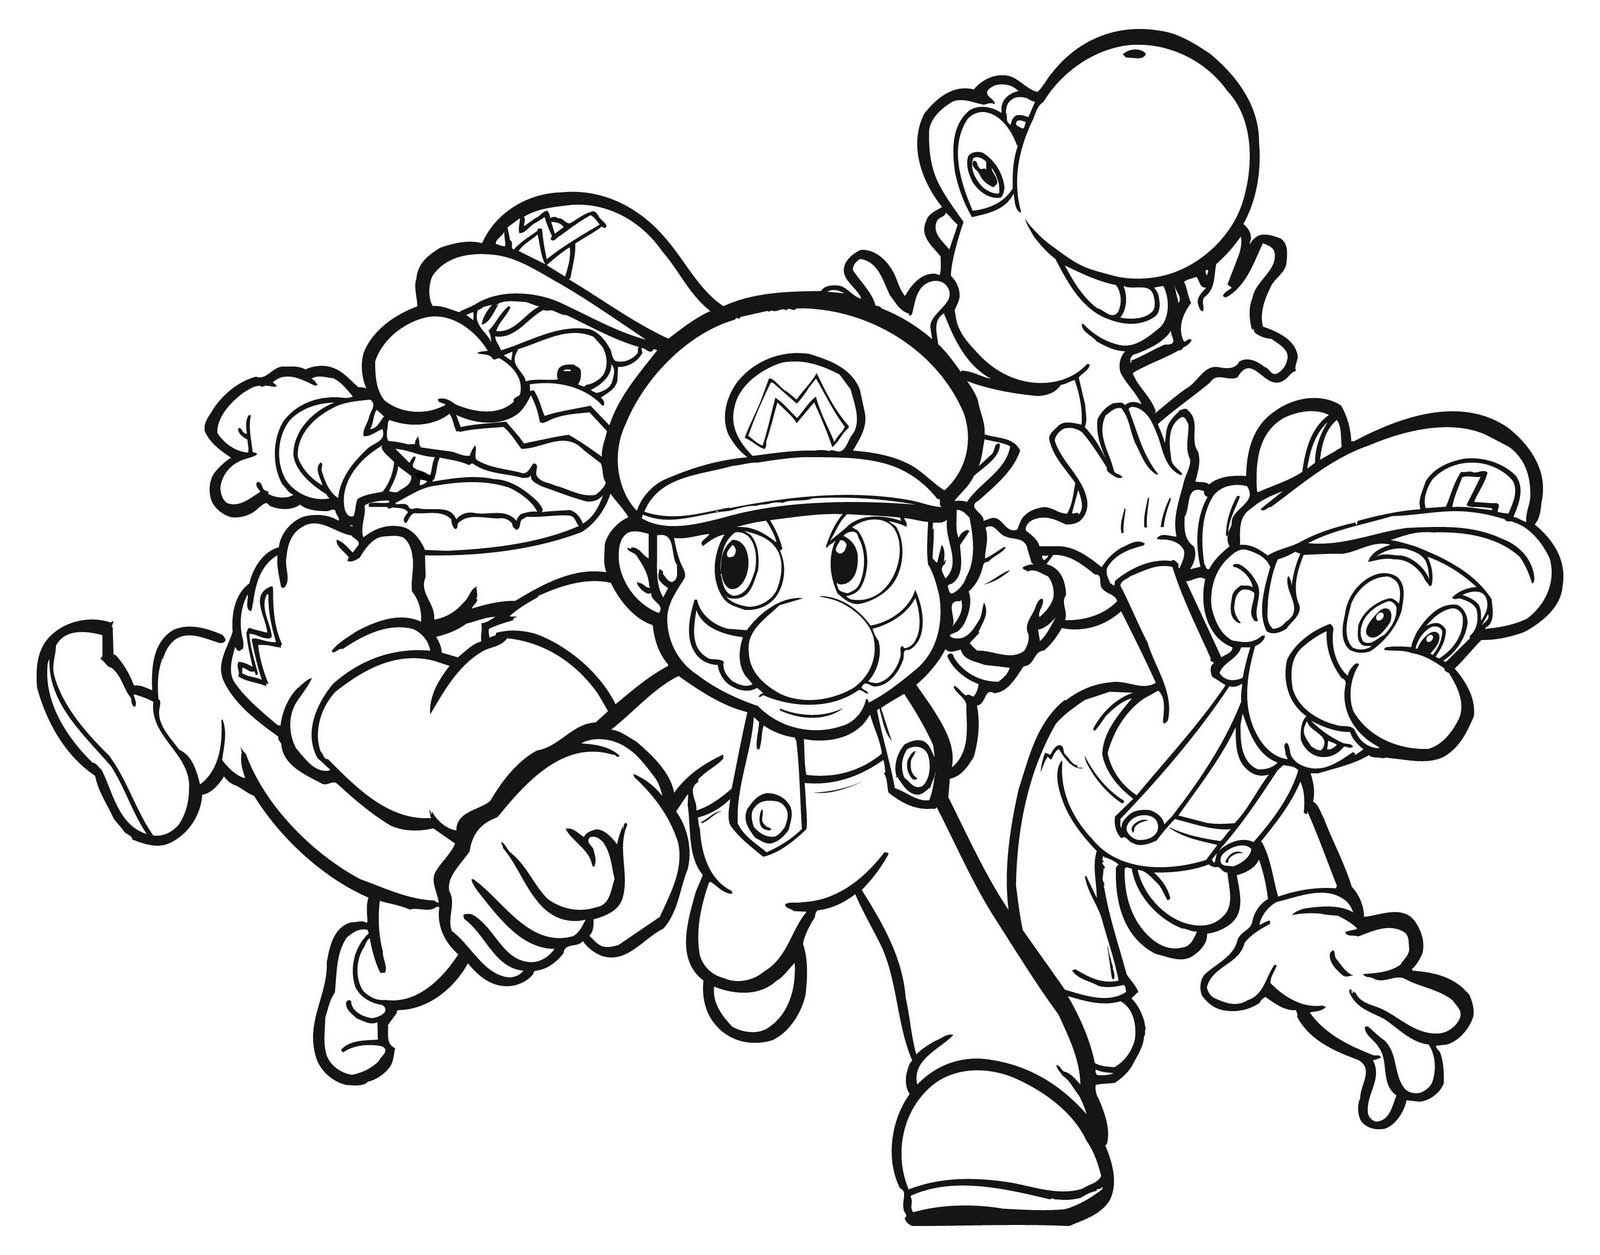 lago mario coloring pages - photo#12